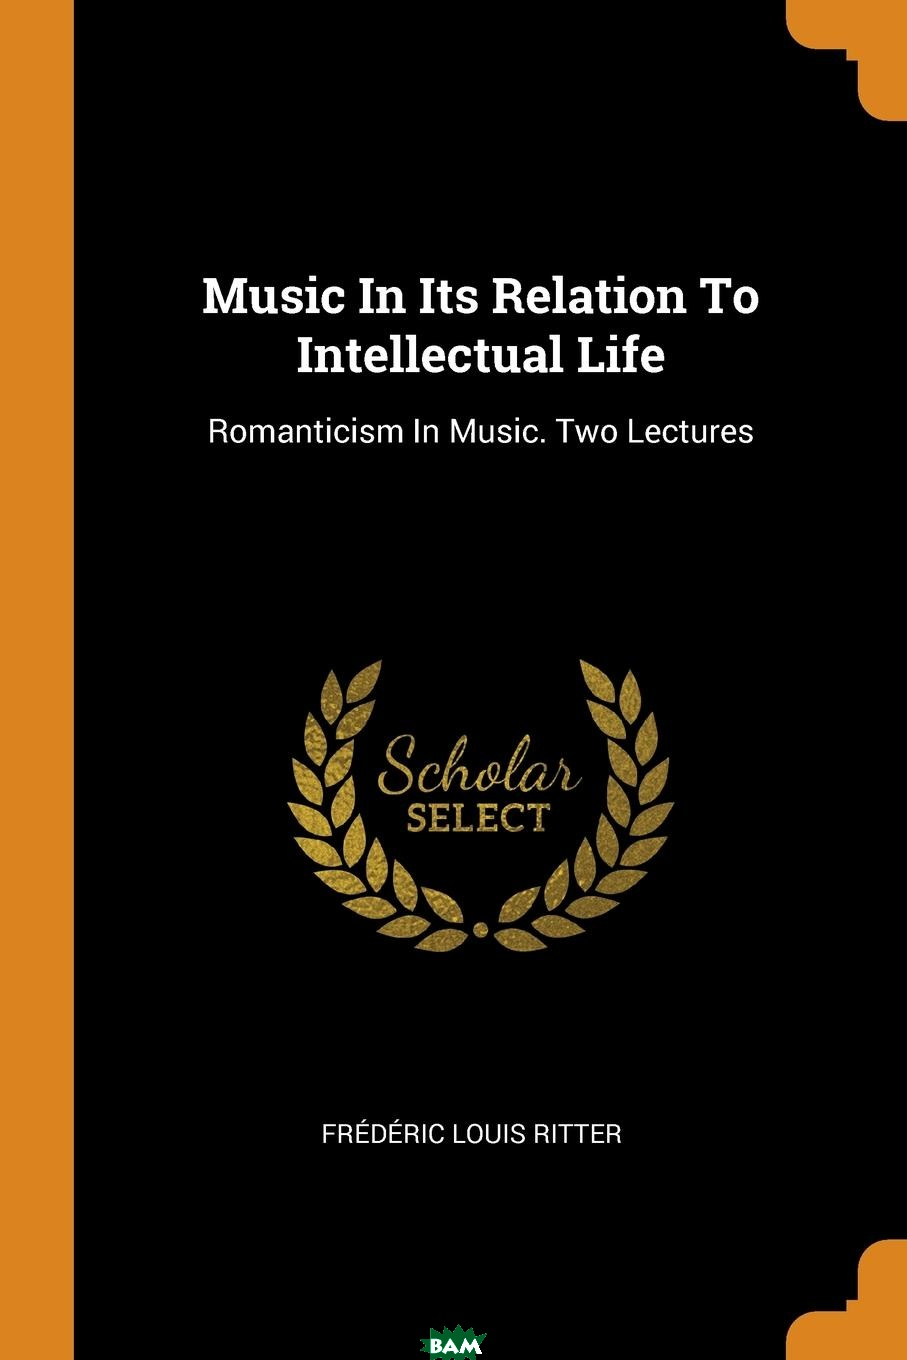 Купить Music In Its Relation To Intellectual Life. Romanticism In Music. Two Lectures, Frederic Louis Ritter, 9780353482685